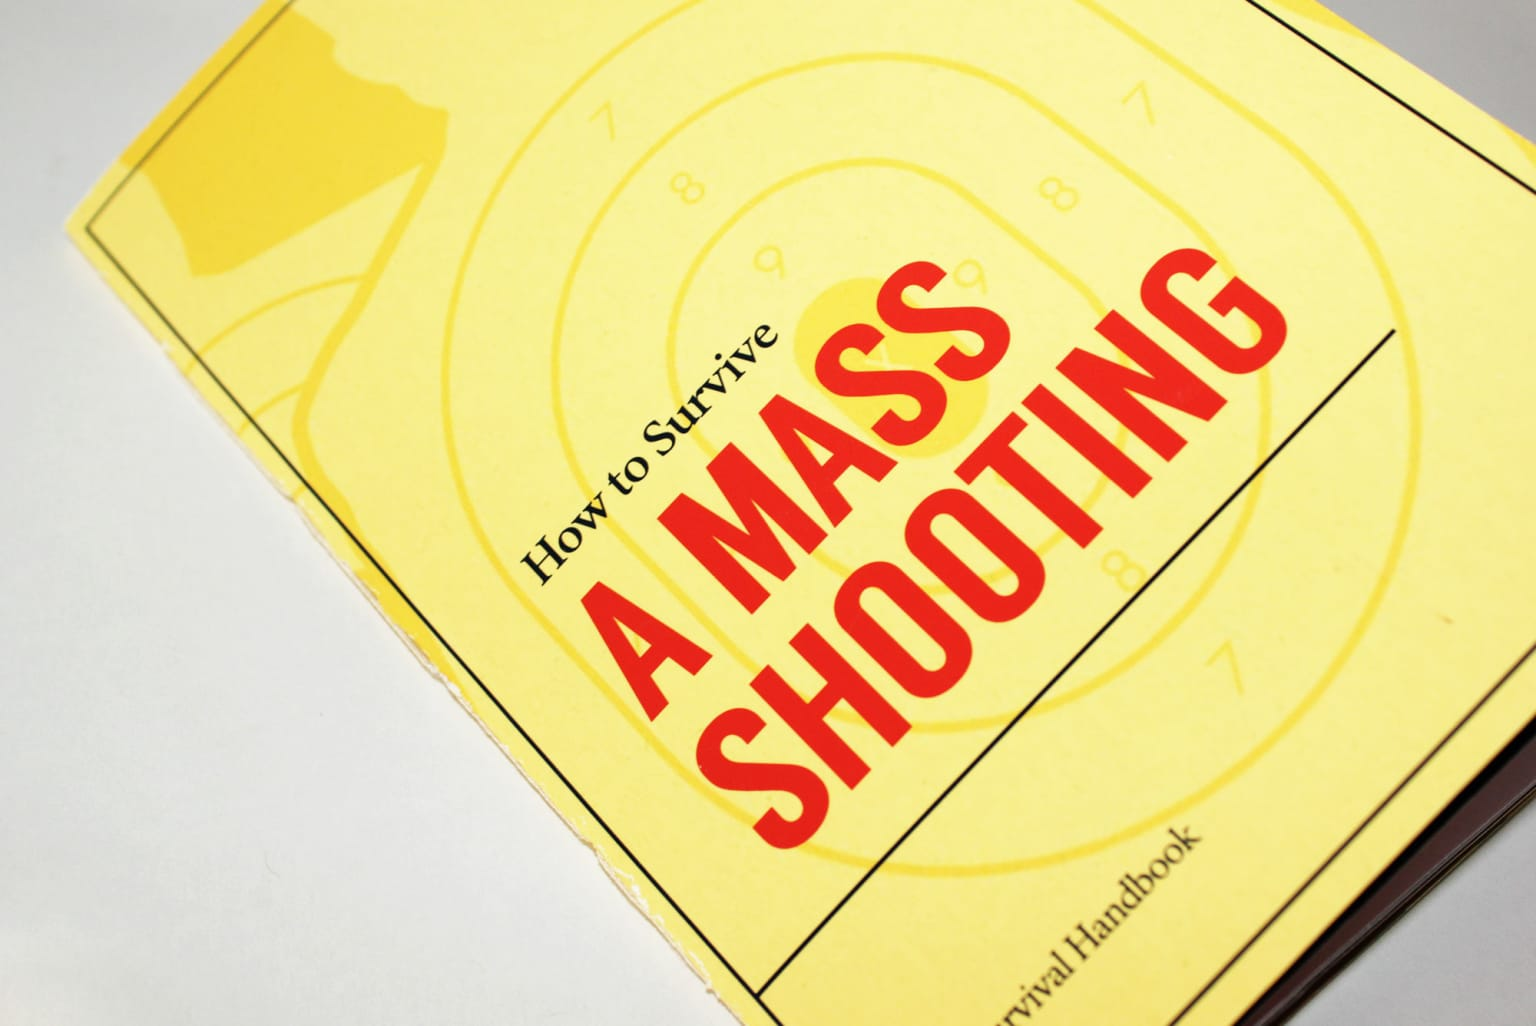 How to Survive a Mass Shooting